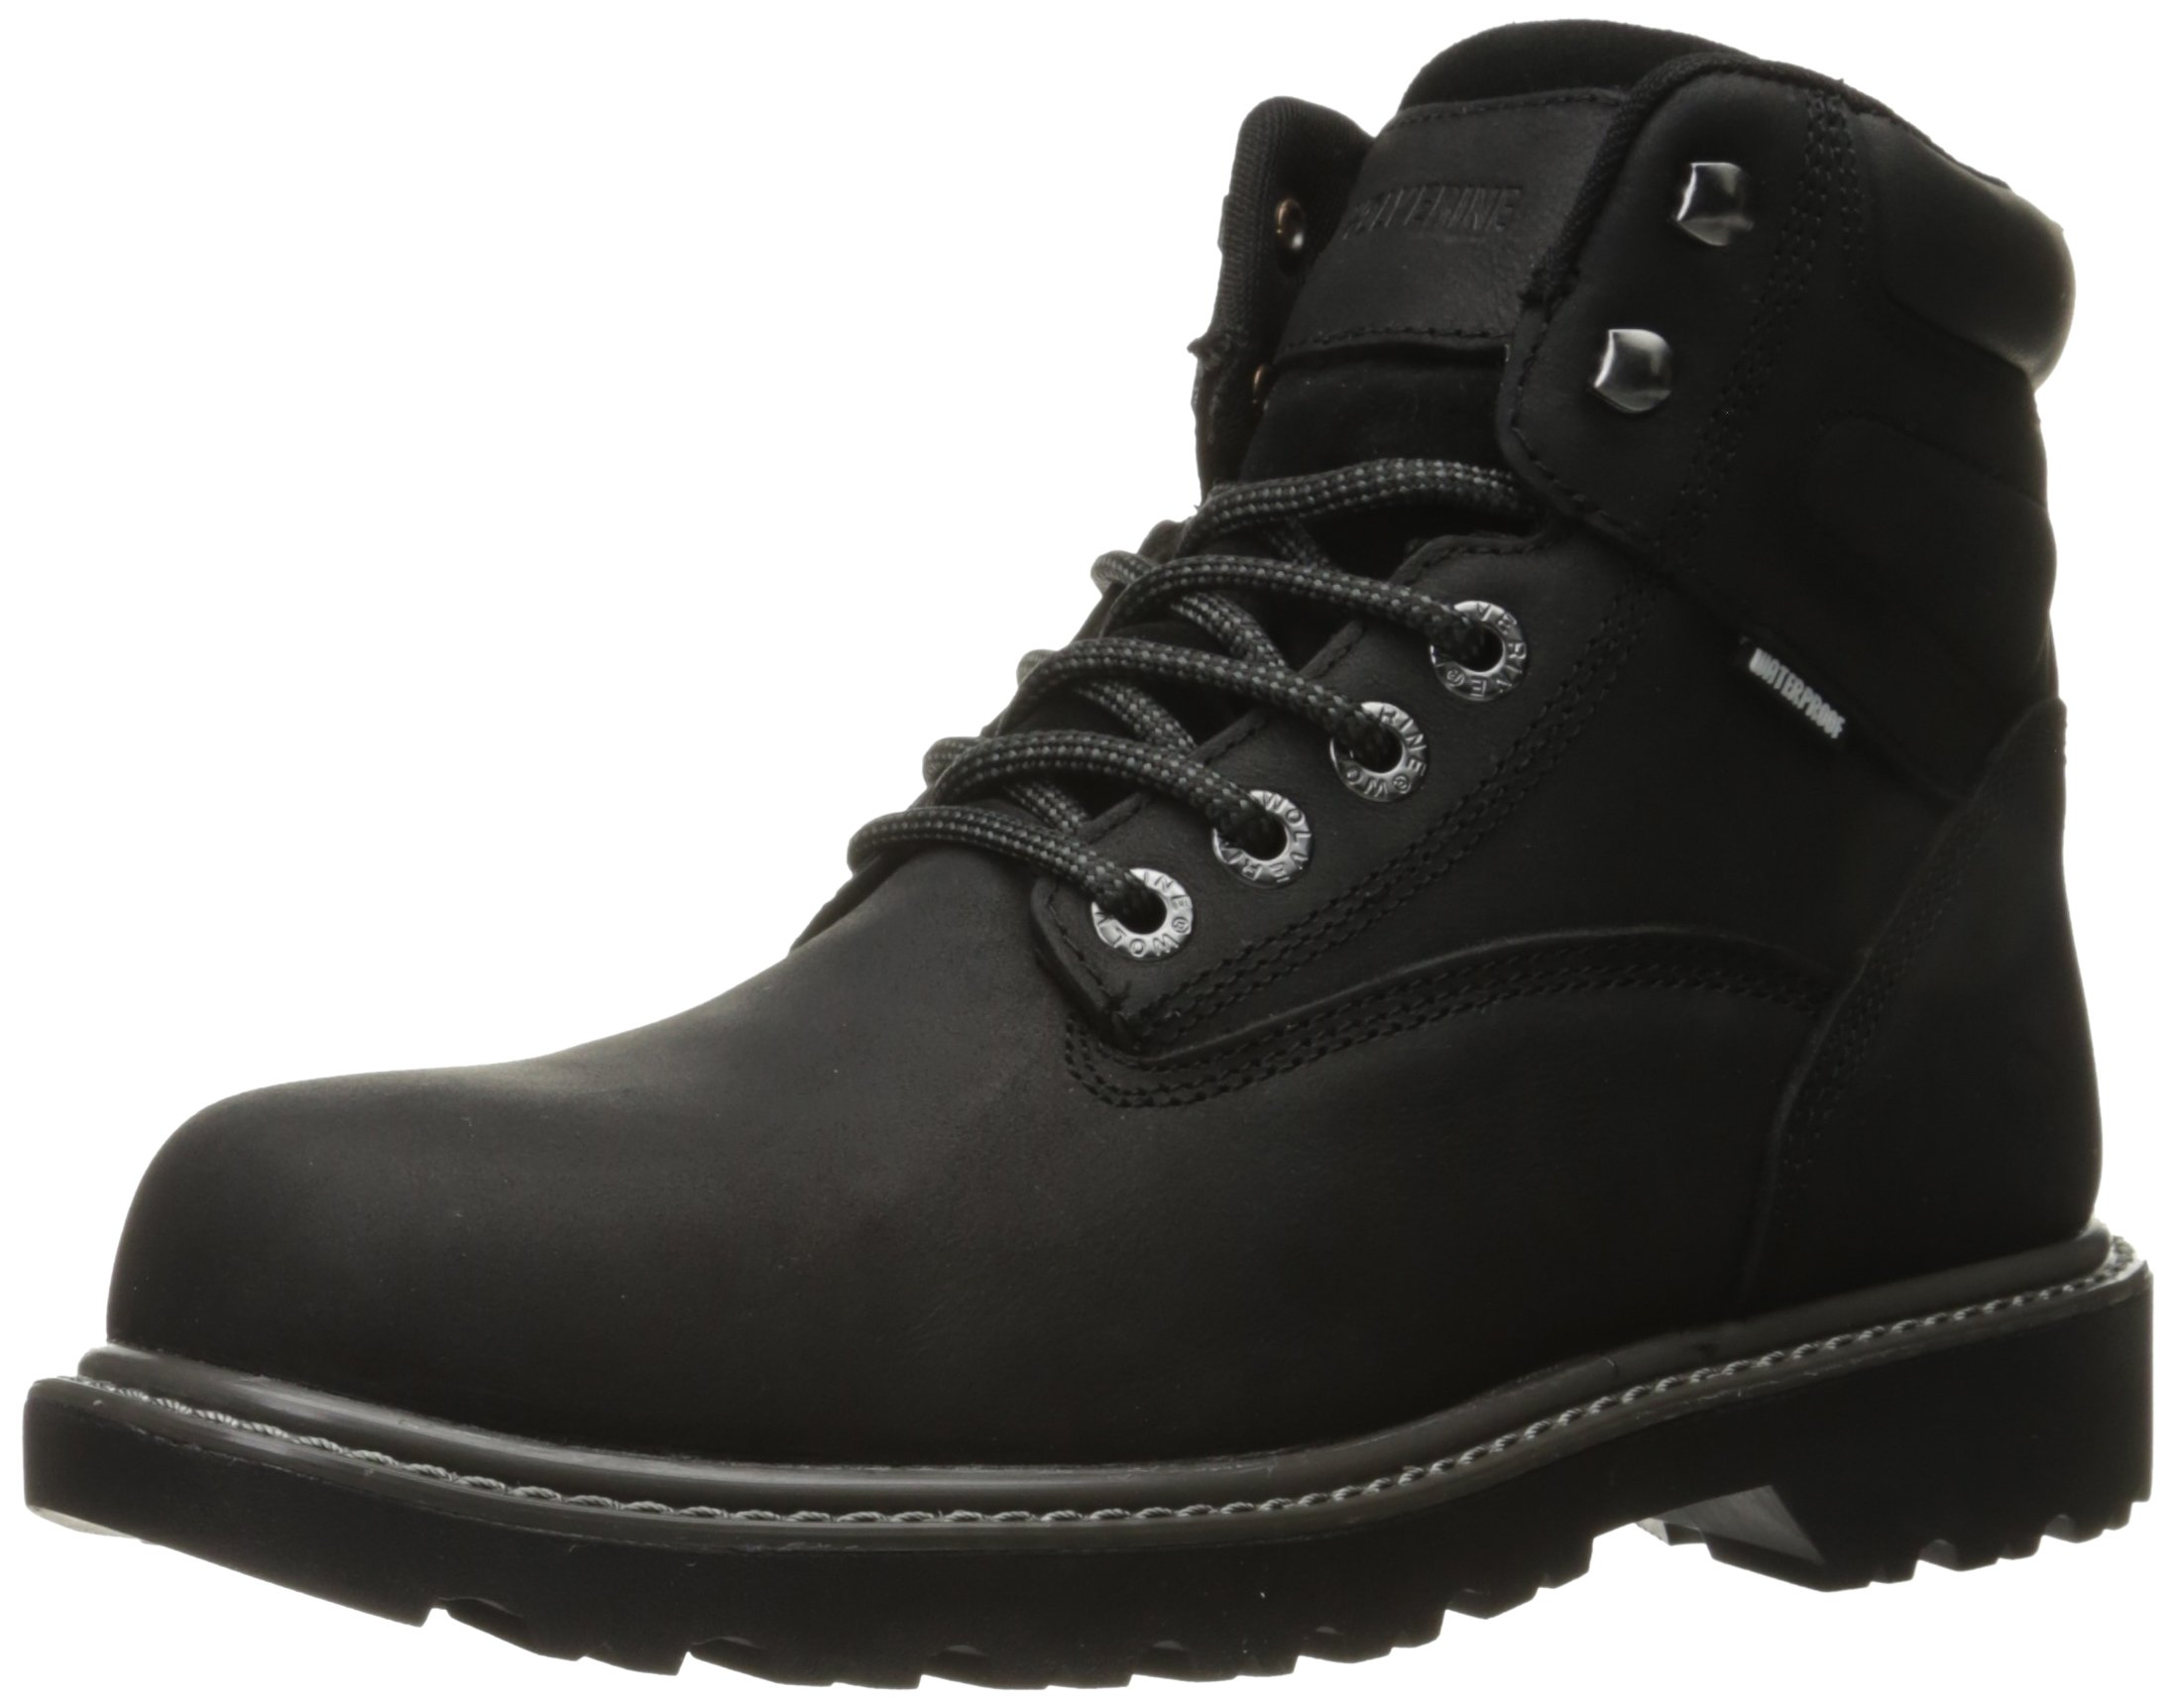 Wolverine Men's Floorhand Waterproof 6'' Steel Toe Work Boot, Black, 13 M US by Wolverine